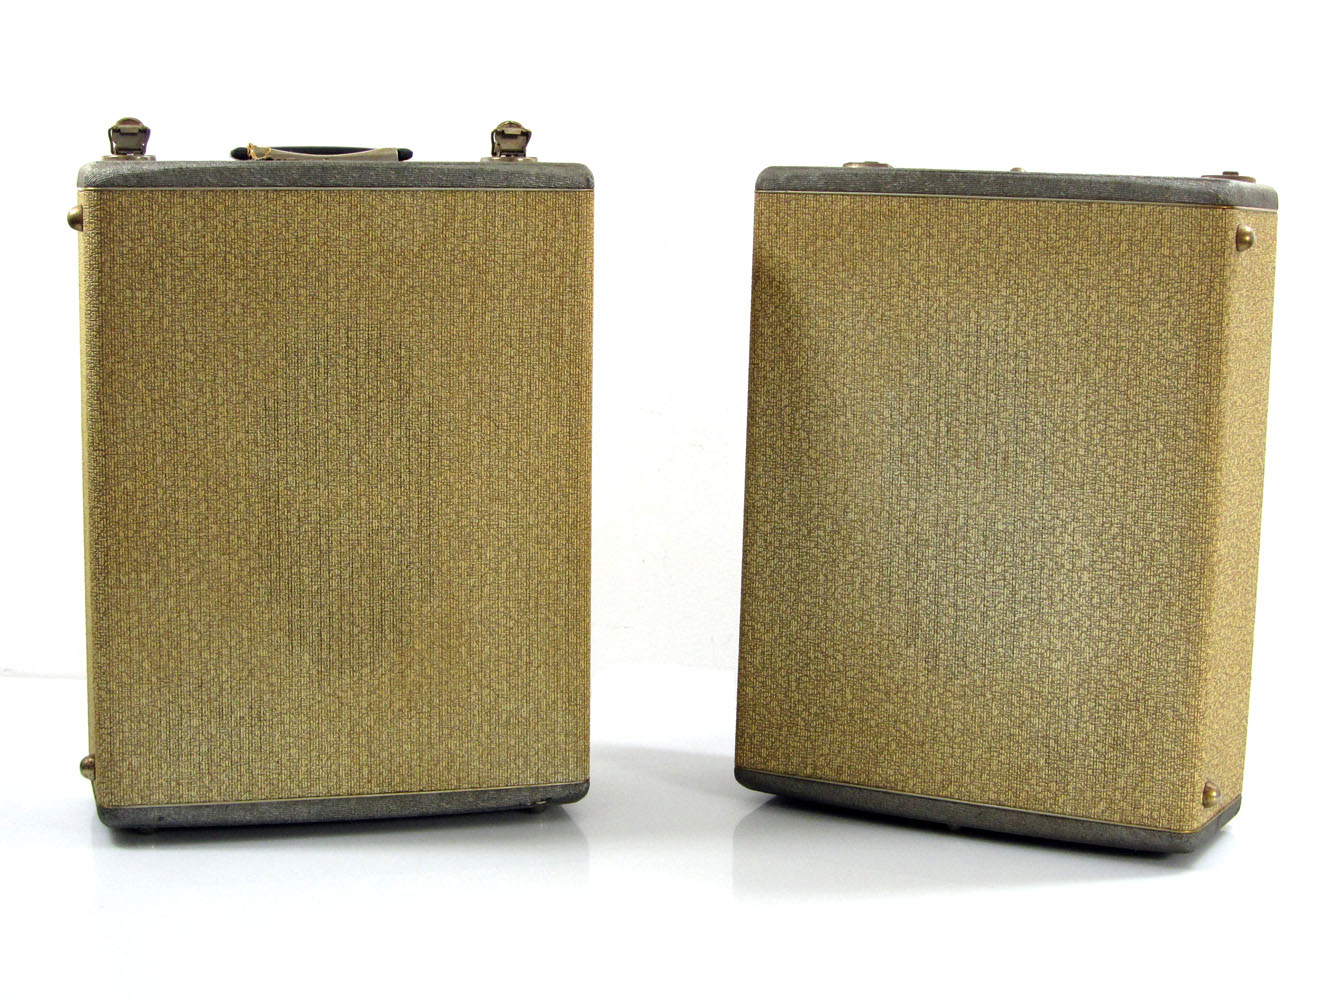 Retro Speakers